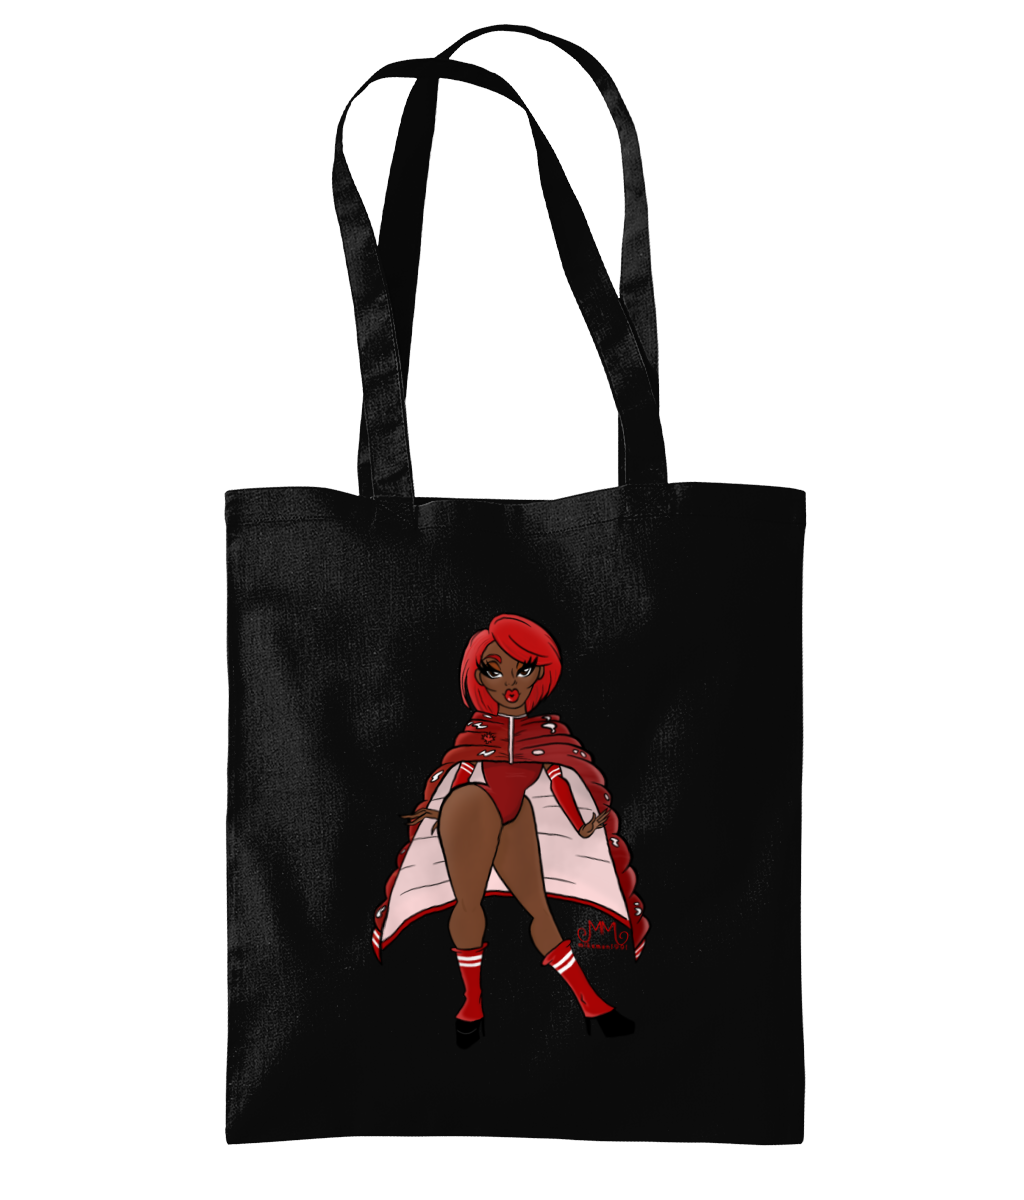 Anastarzia Anaquway - Starzy x Moncler - Canuck Couture Tote Bag